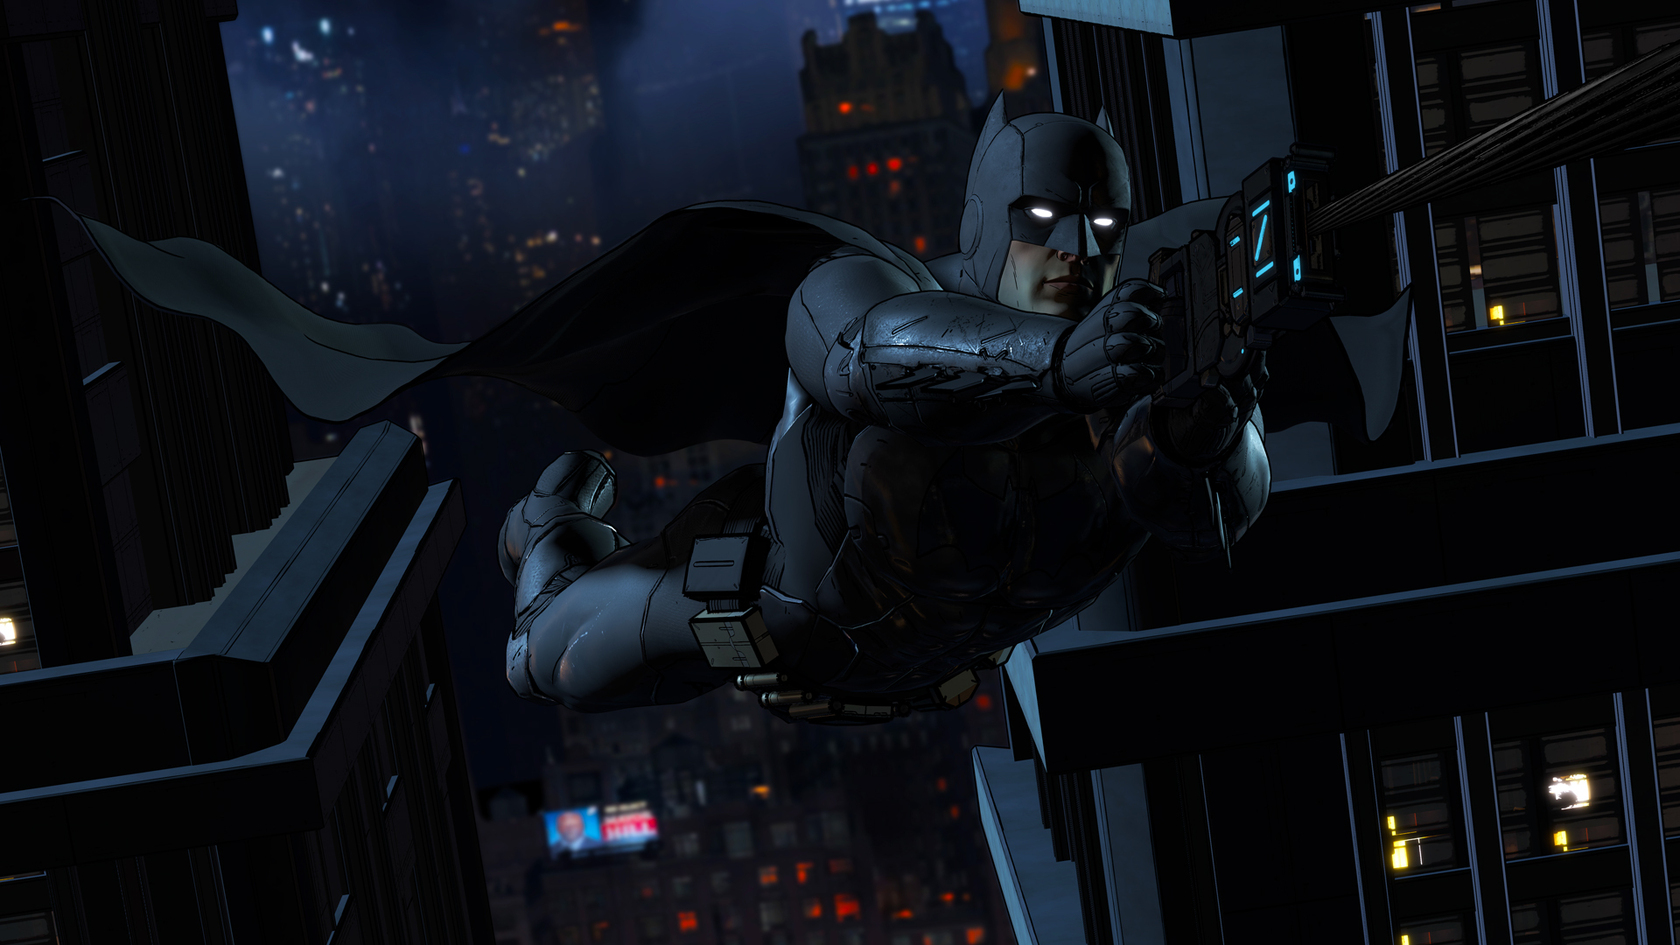 http://www.wingamestore.com/images_screenshots/batman-the-telltale-series-42576.jpg